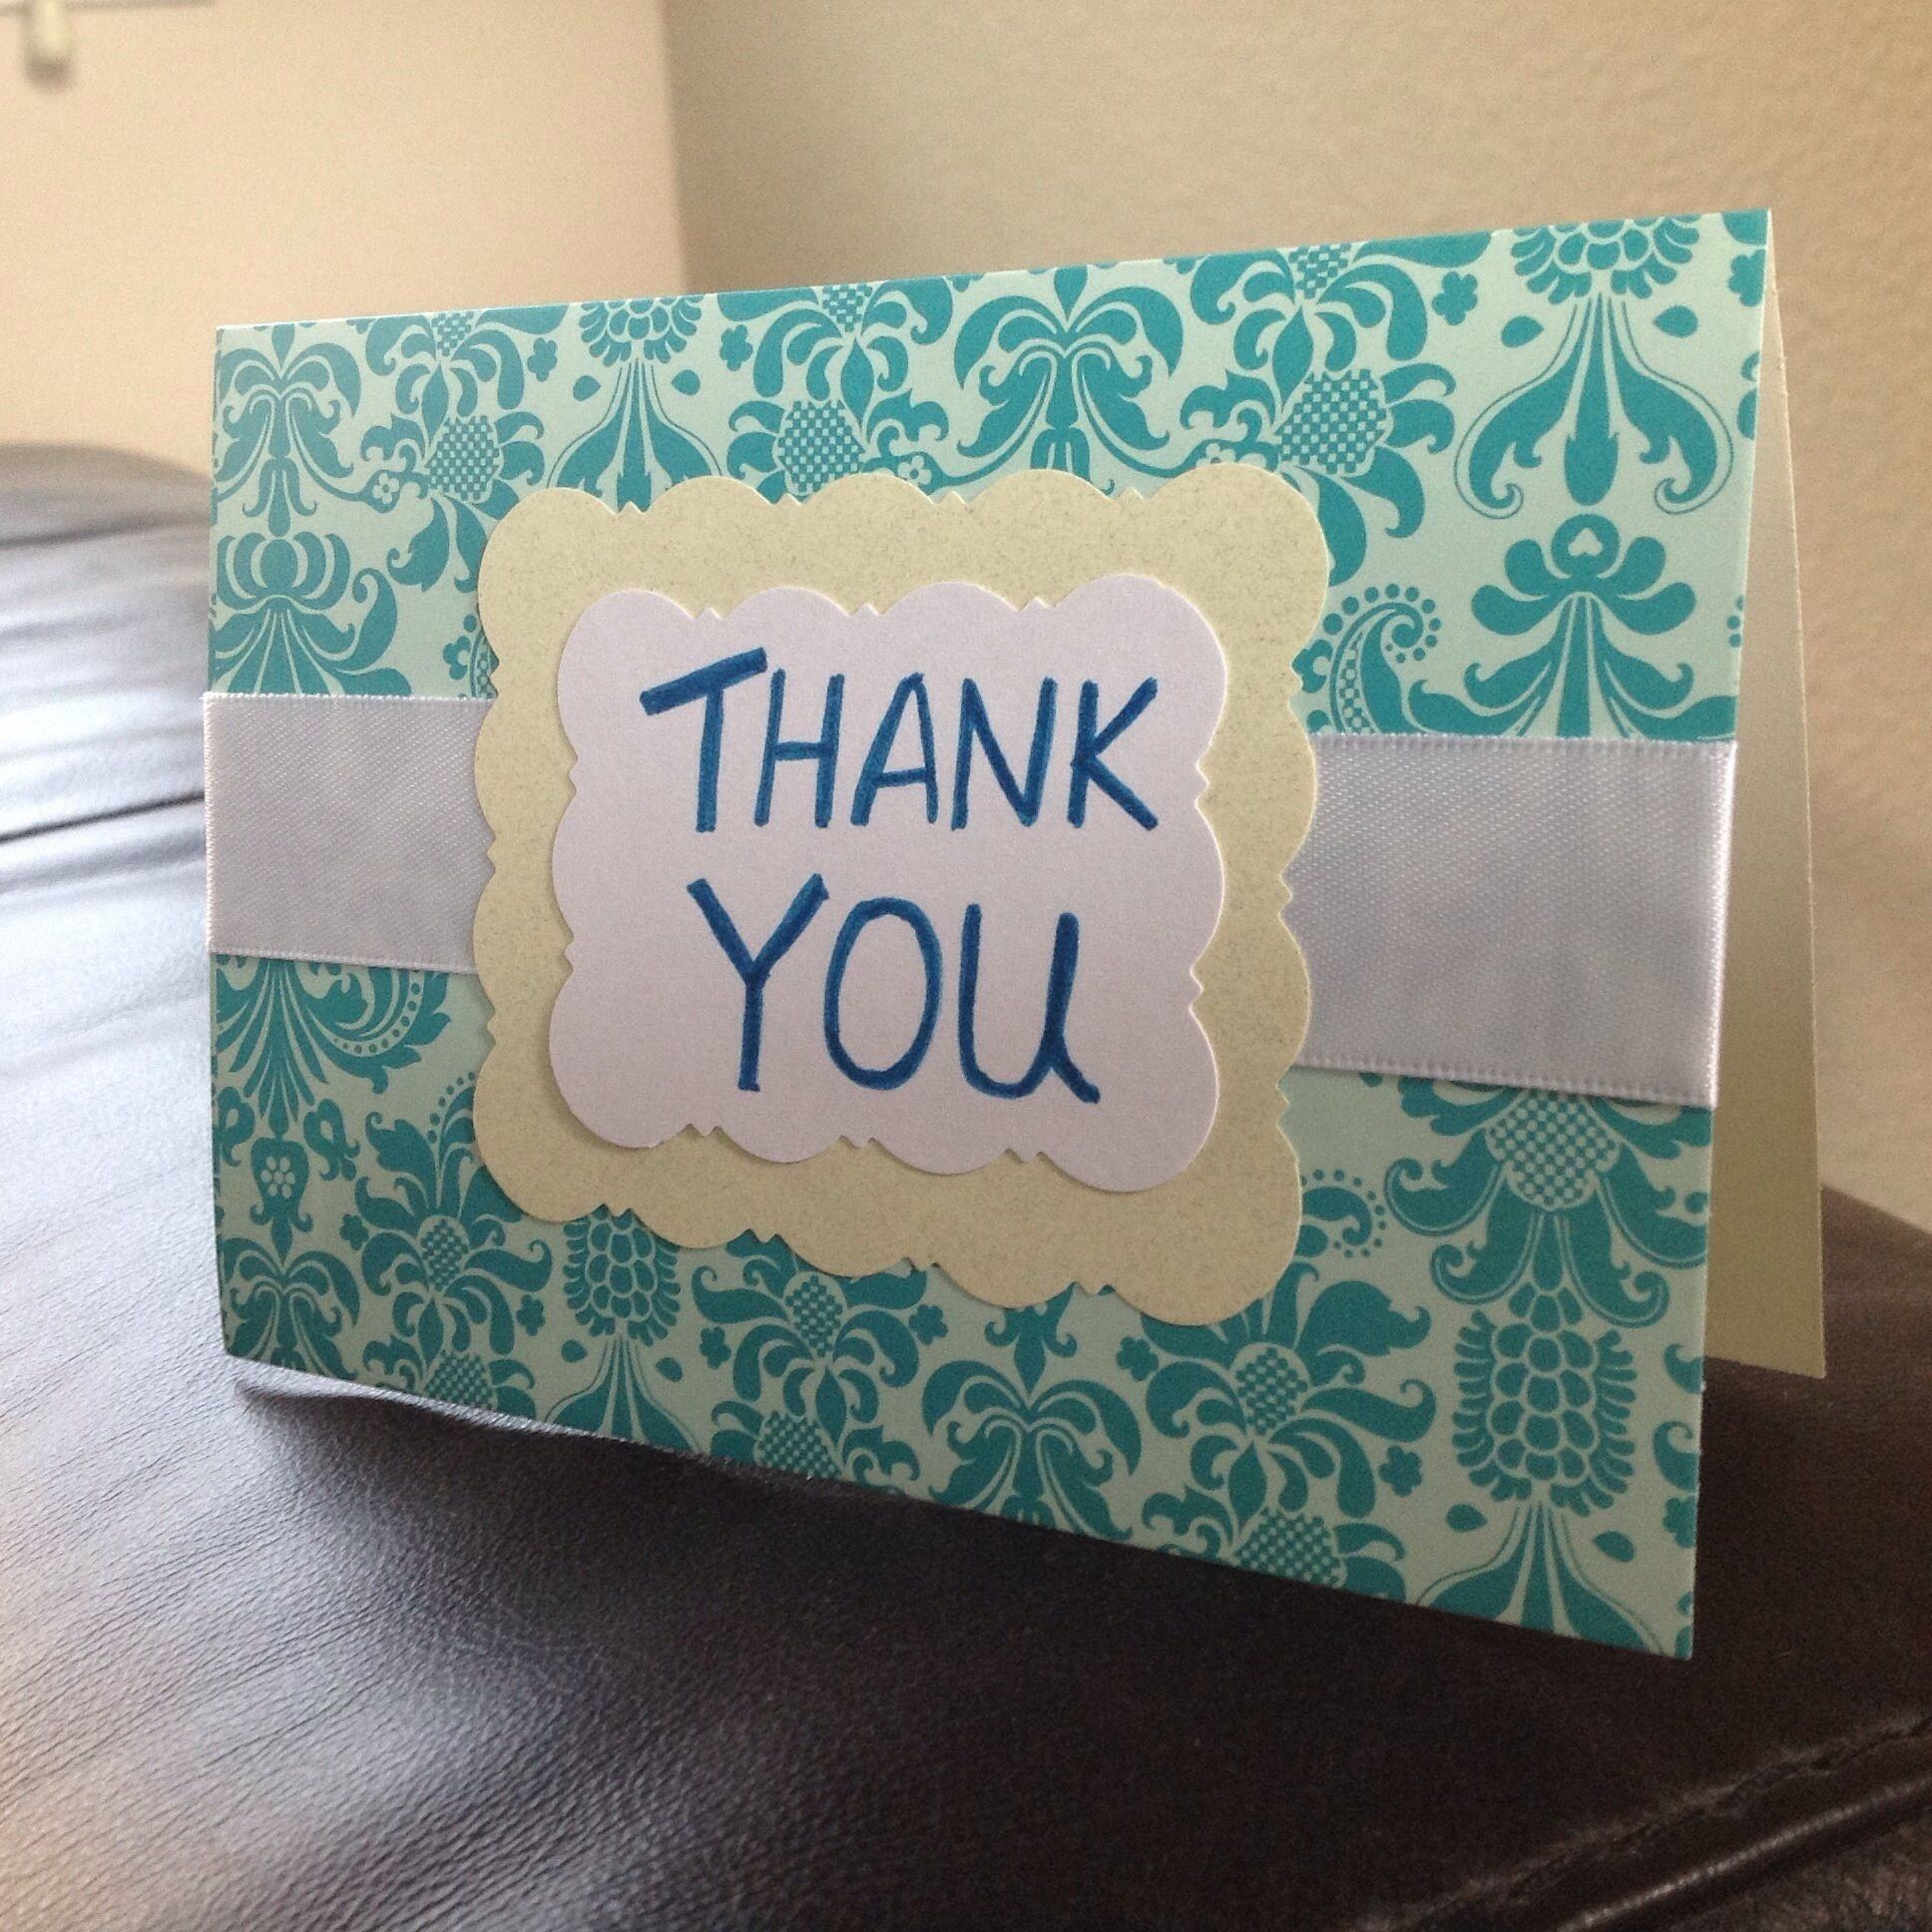 10 Famous Ideas For Thank You Cards card ideas thank you cards card ideas and cards 1 2020